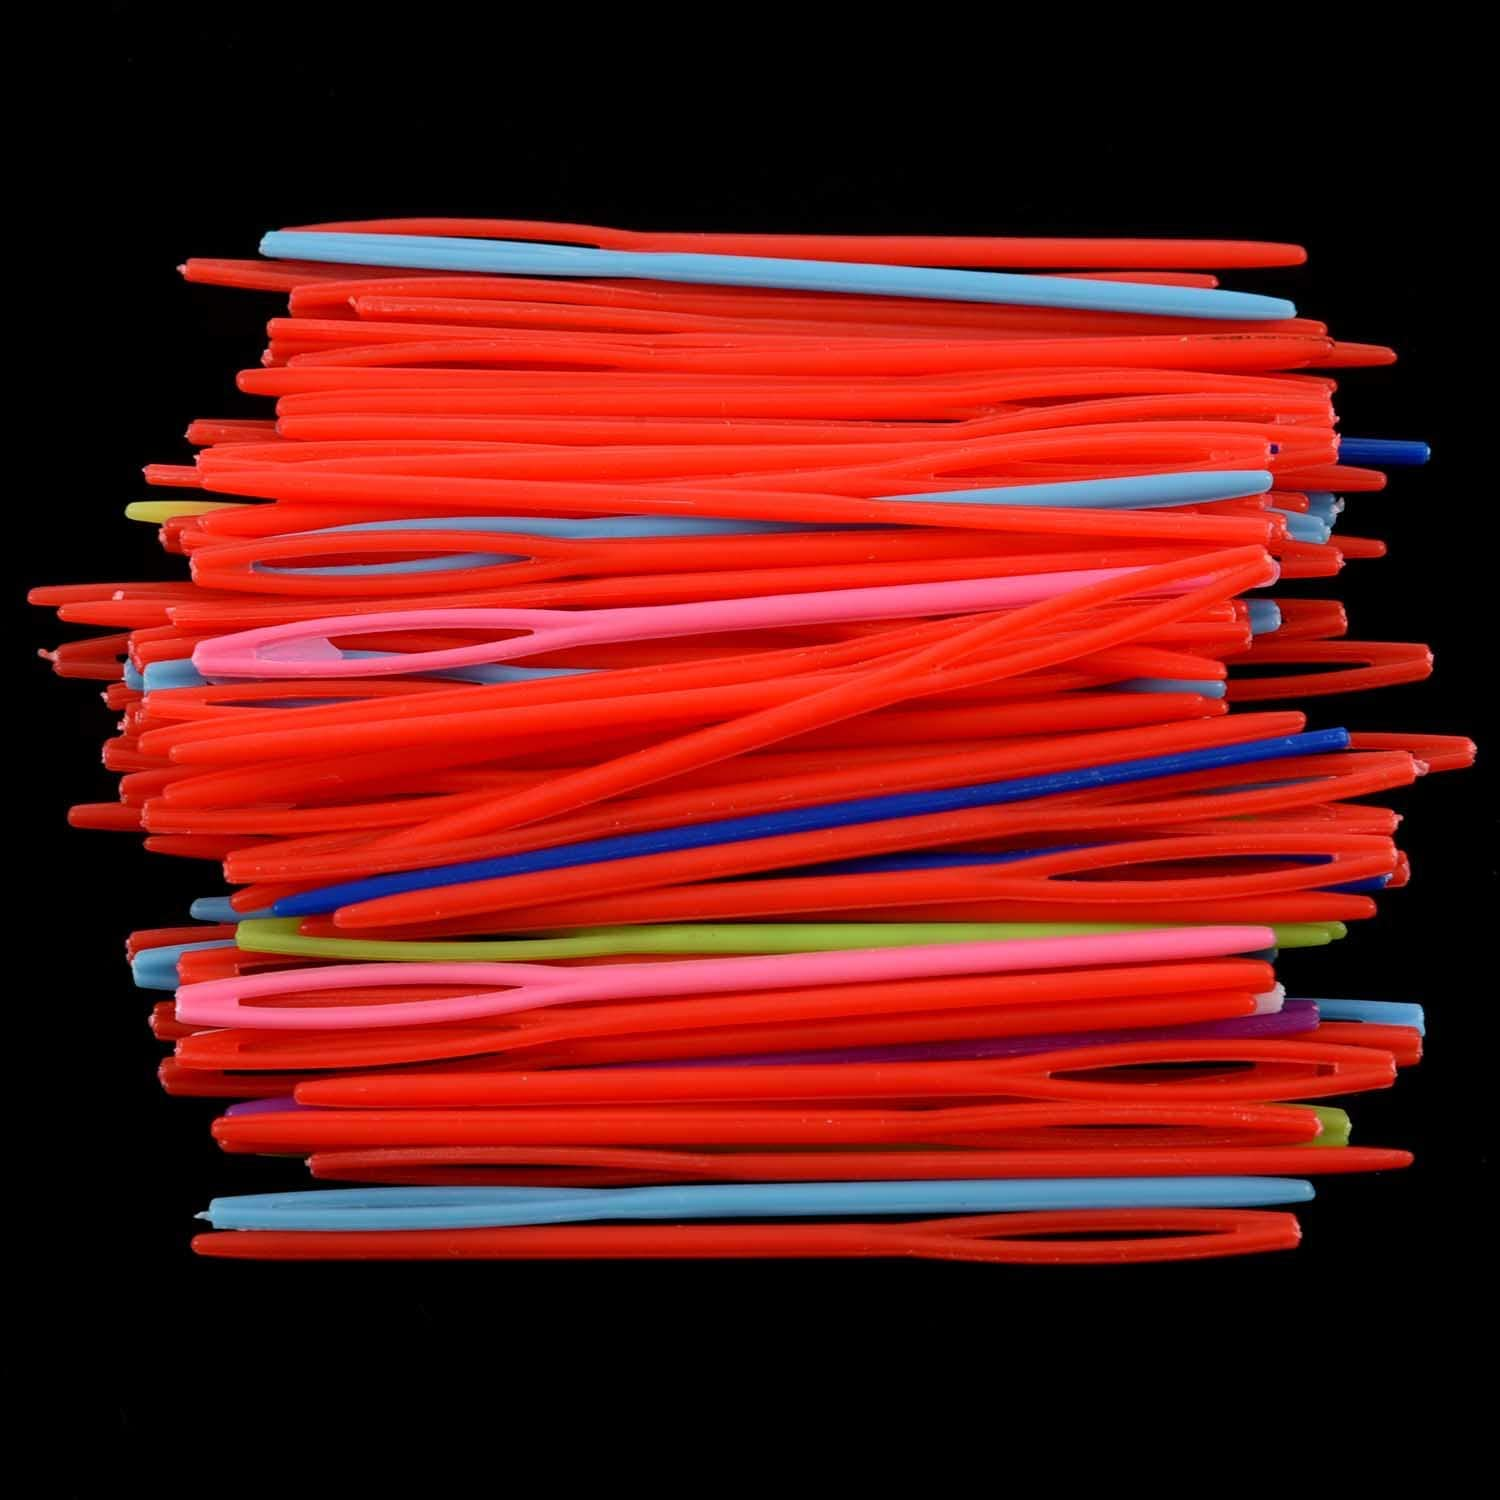 Random Color Pceewtyt 100 pcs 7CM//2 3//4inch Plastic Hand Sewing Yarn Darning Tapestry Needles Plastic Lacing Needles Notions Craft